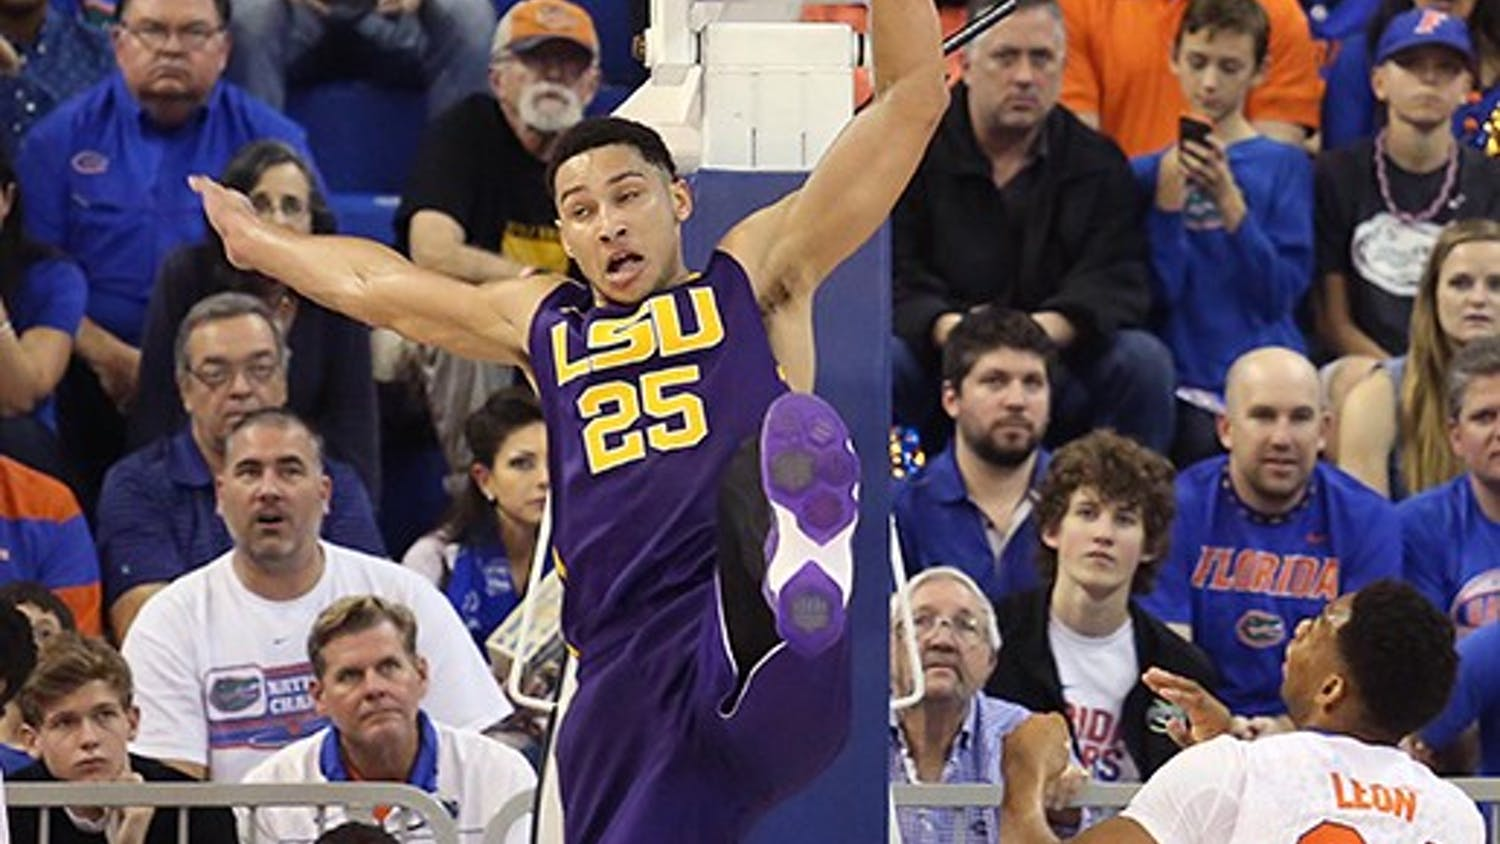 LSU's Ben Simmons (25) leaps for a rebound against Florida at the Stephen C. O'Connell Center in Gainesville, Fla., on Saturday, Jan. 9, 2016. Florida won, 68-62. (Stephen M. Dowell/Orlando Sentinel/TNS)